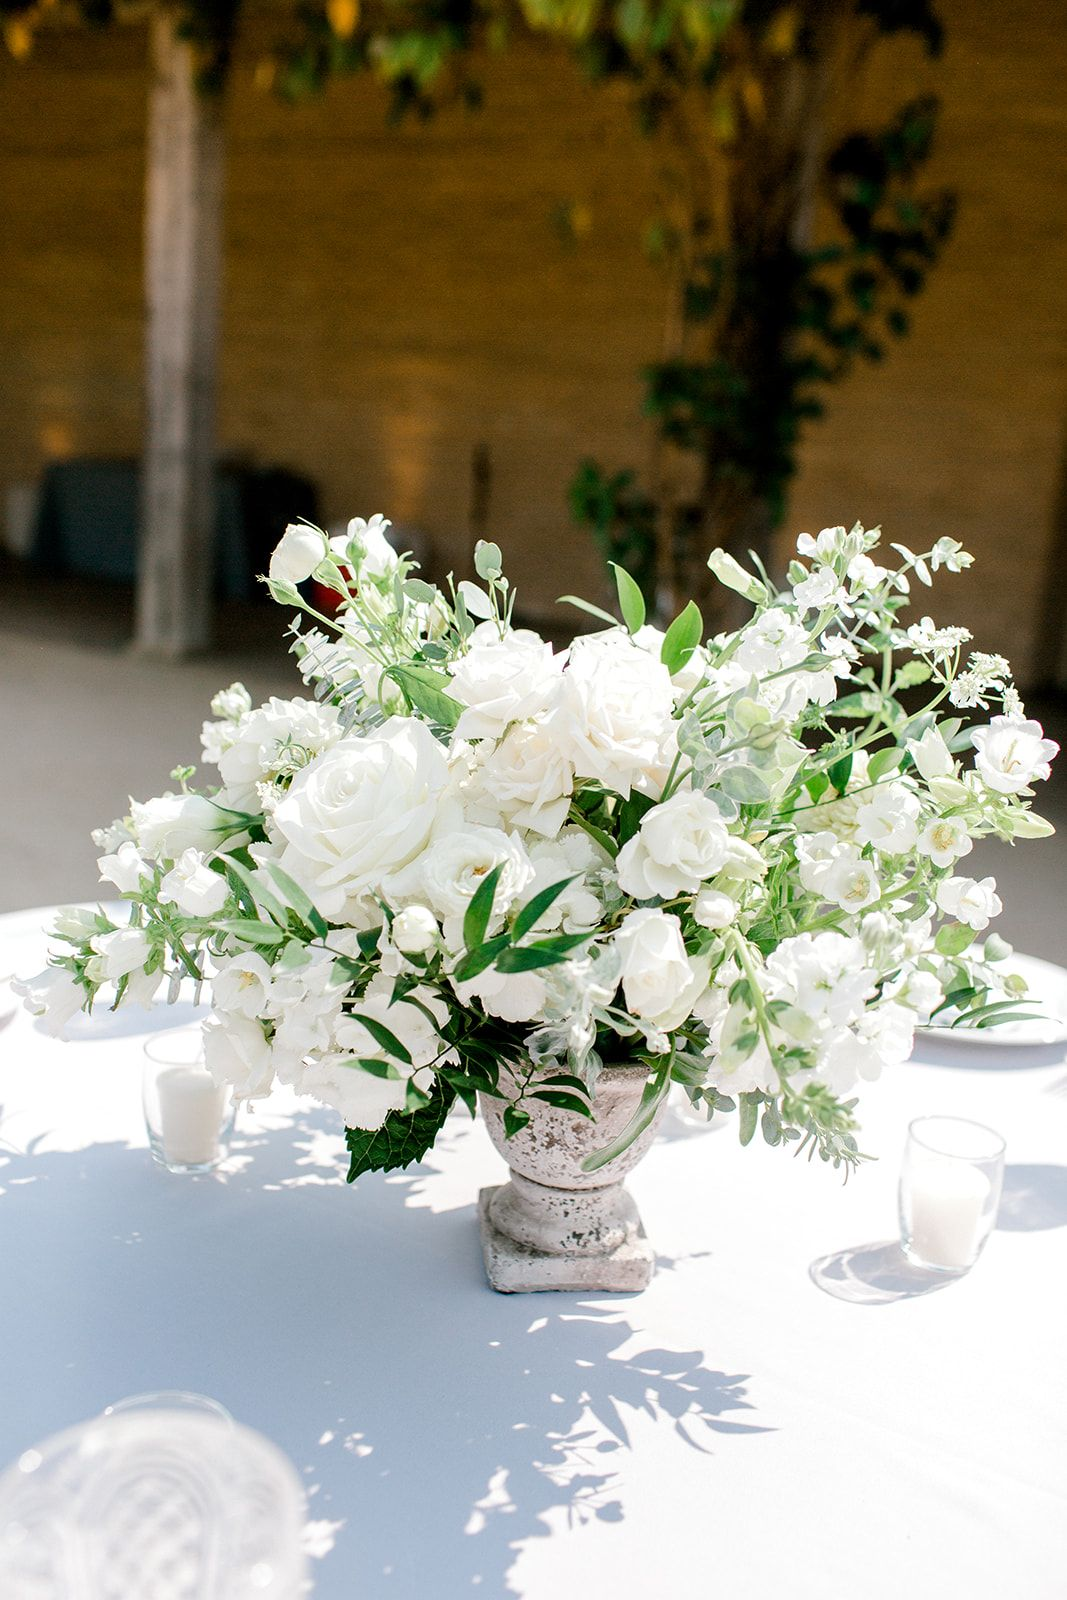 Round Table Centerpiece Stone Compote With White Flowers And Eucalyptus Greener White Wedding Centerpieces White Floral Centerpieces Table Flower Arrangements